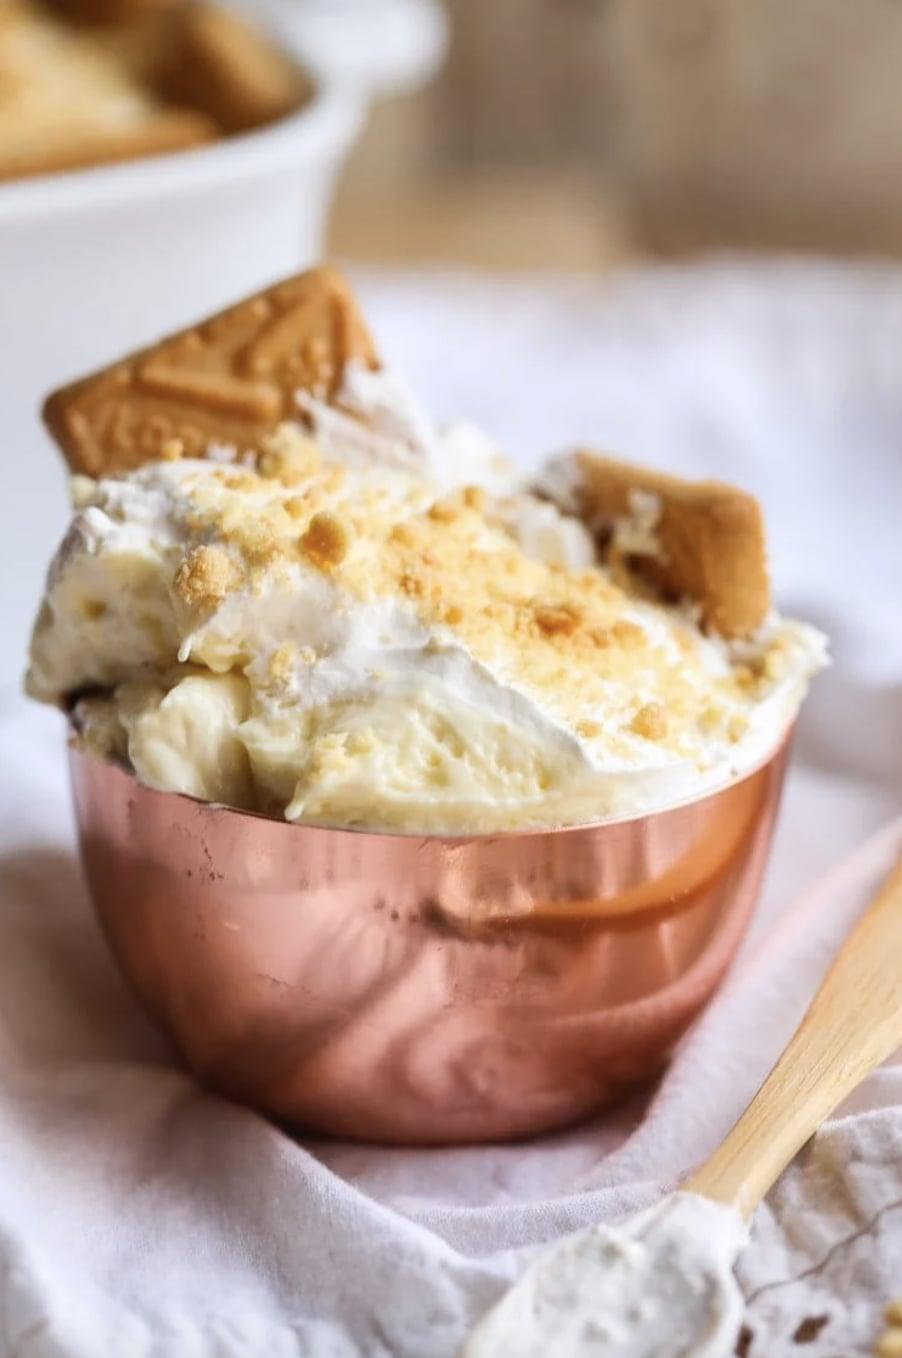 "<p>Creamy, rich, and oh-so-good, Virginia just gave you the banana pudding recipe you've always wanted. Serve it in individual ramekins or in a trifle dish. Yum! </p> <p><strong>Get the recipe</strong>: <a href=""https://cookiesandcups.com/best-banana-pudding/"" class=""link rapid-noclick-resp"" rel=""nofollow noopener"" target=""_blank"" data-ylk=""slk:banana pudding"">banana pudding</a></p>"